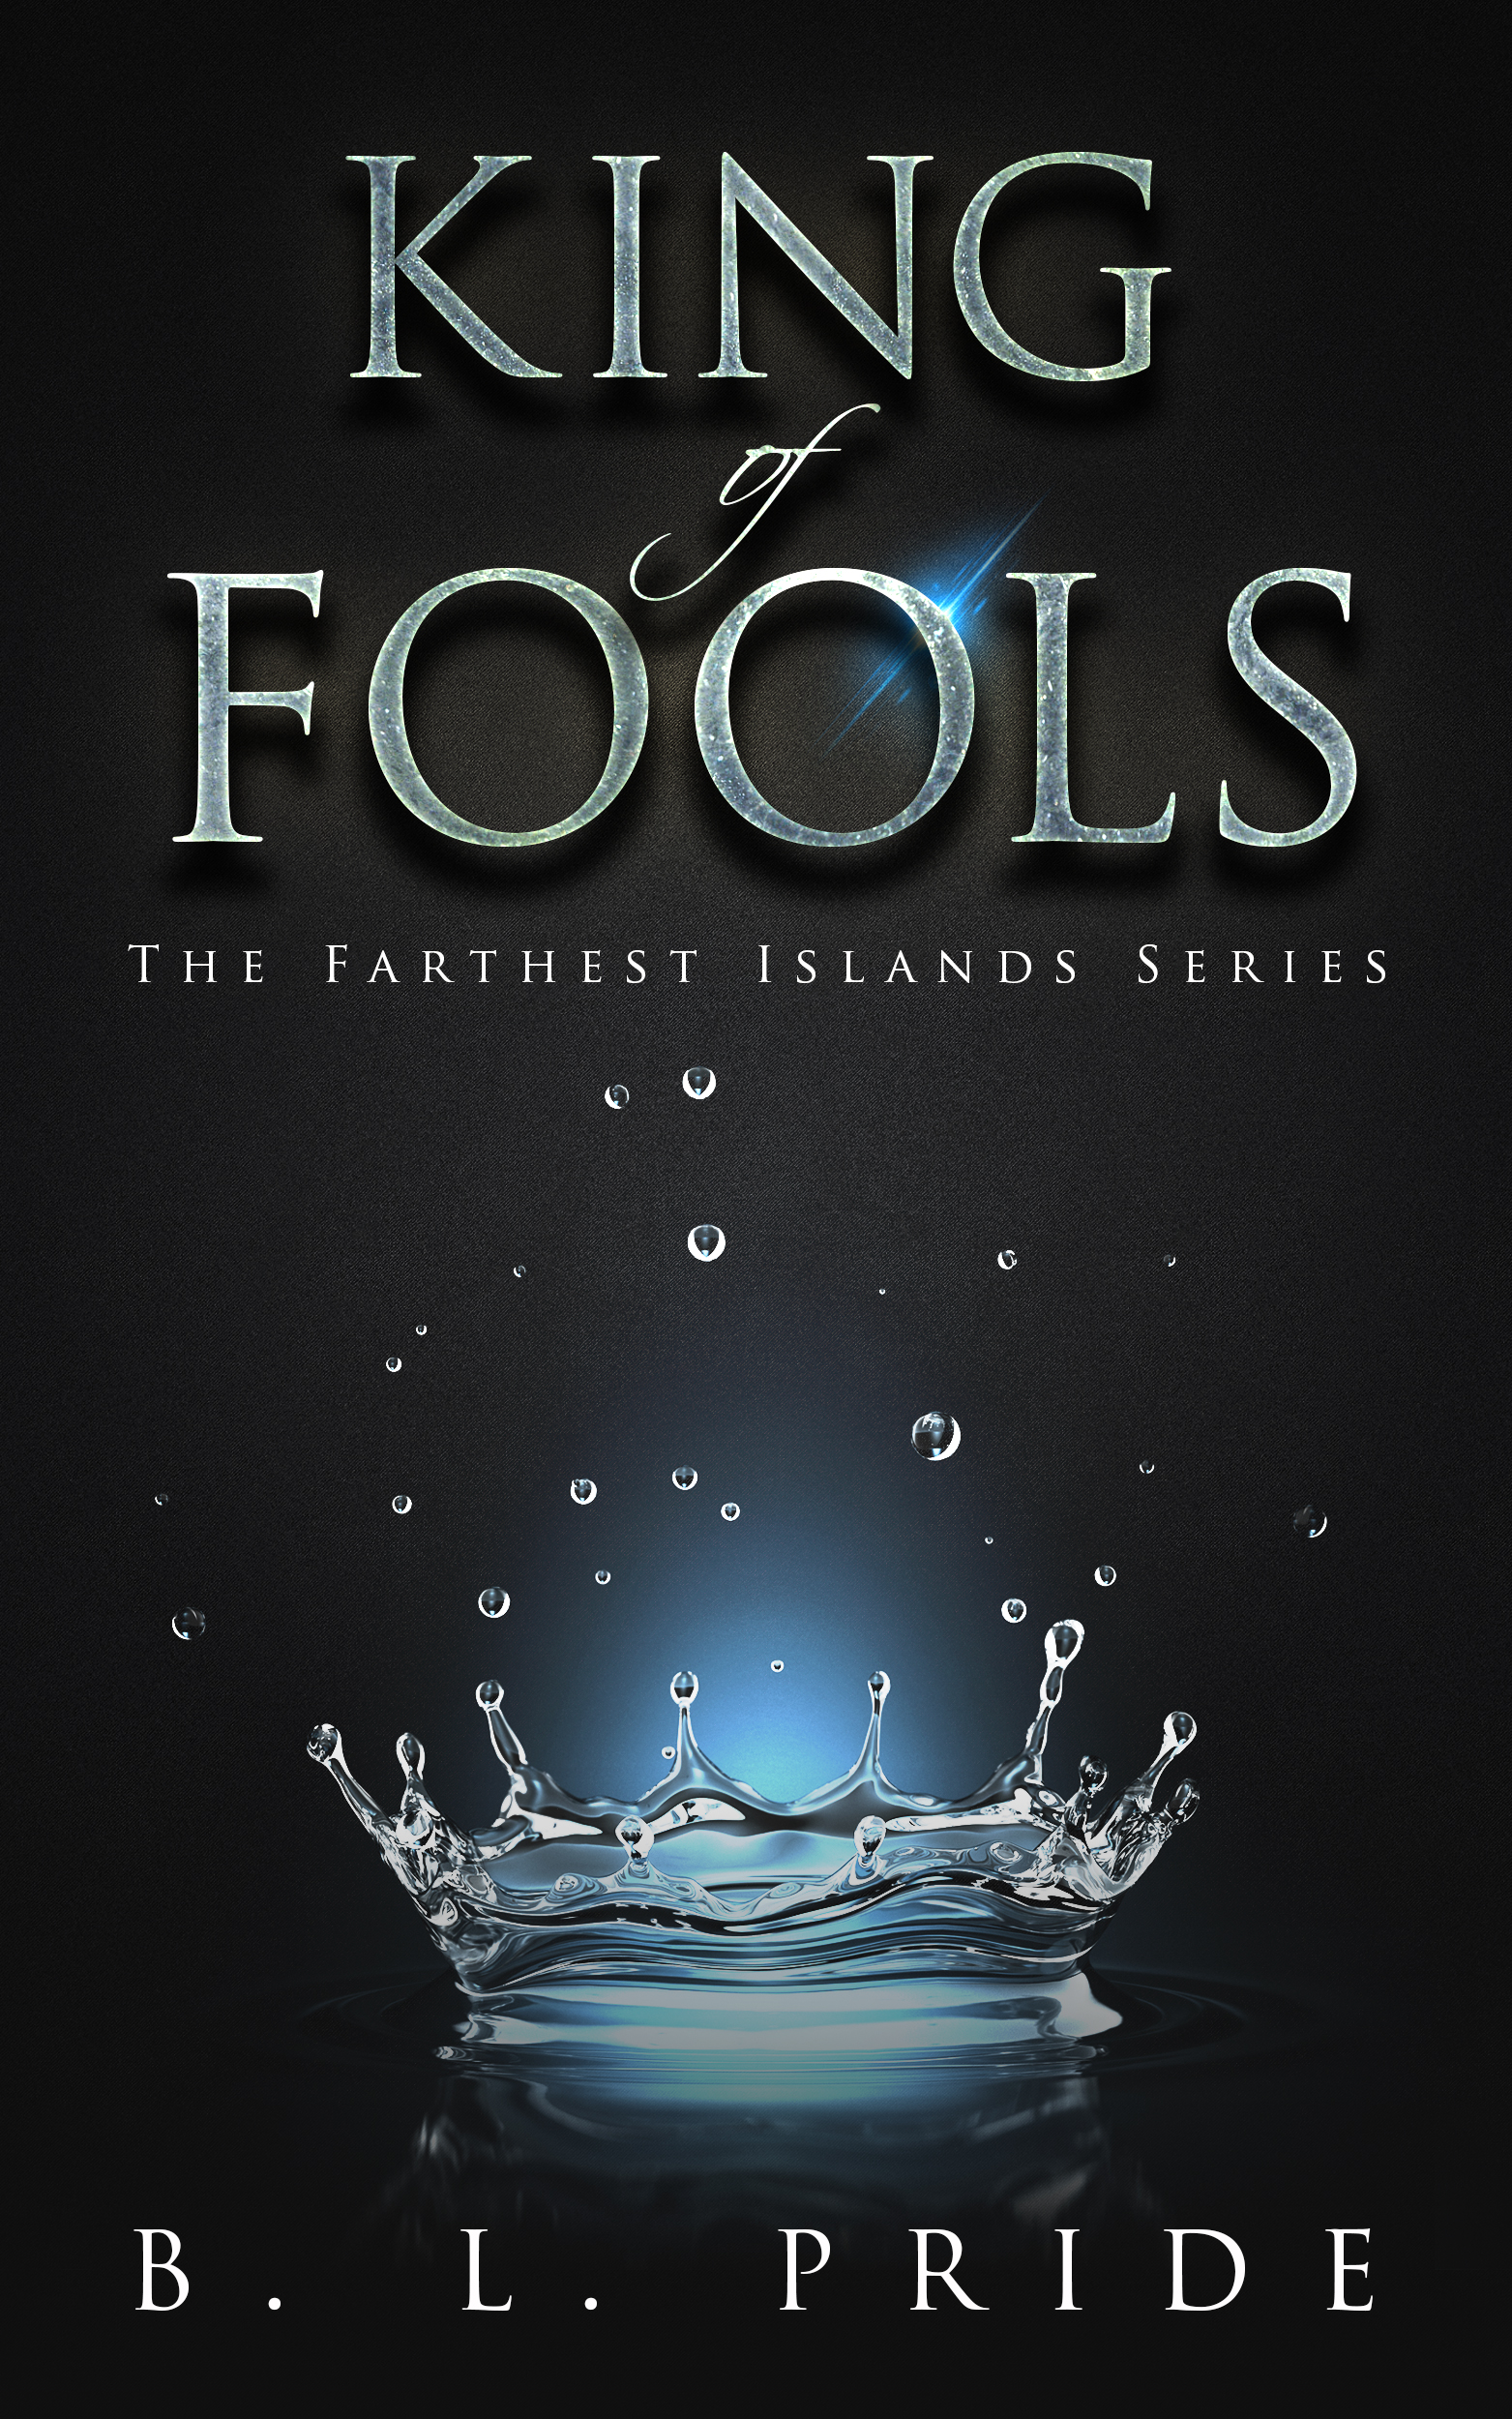 King of Fools (book 1,The Farthest Islands Series)